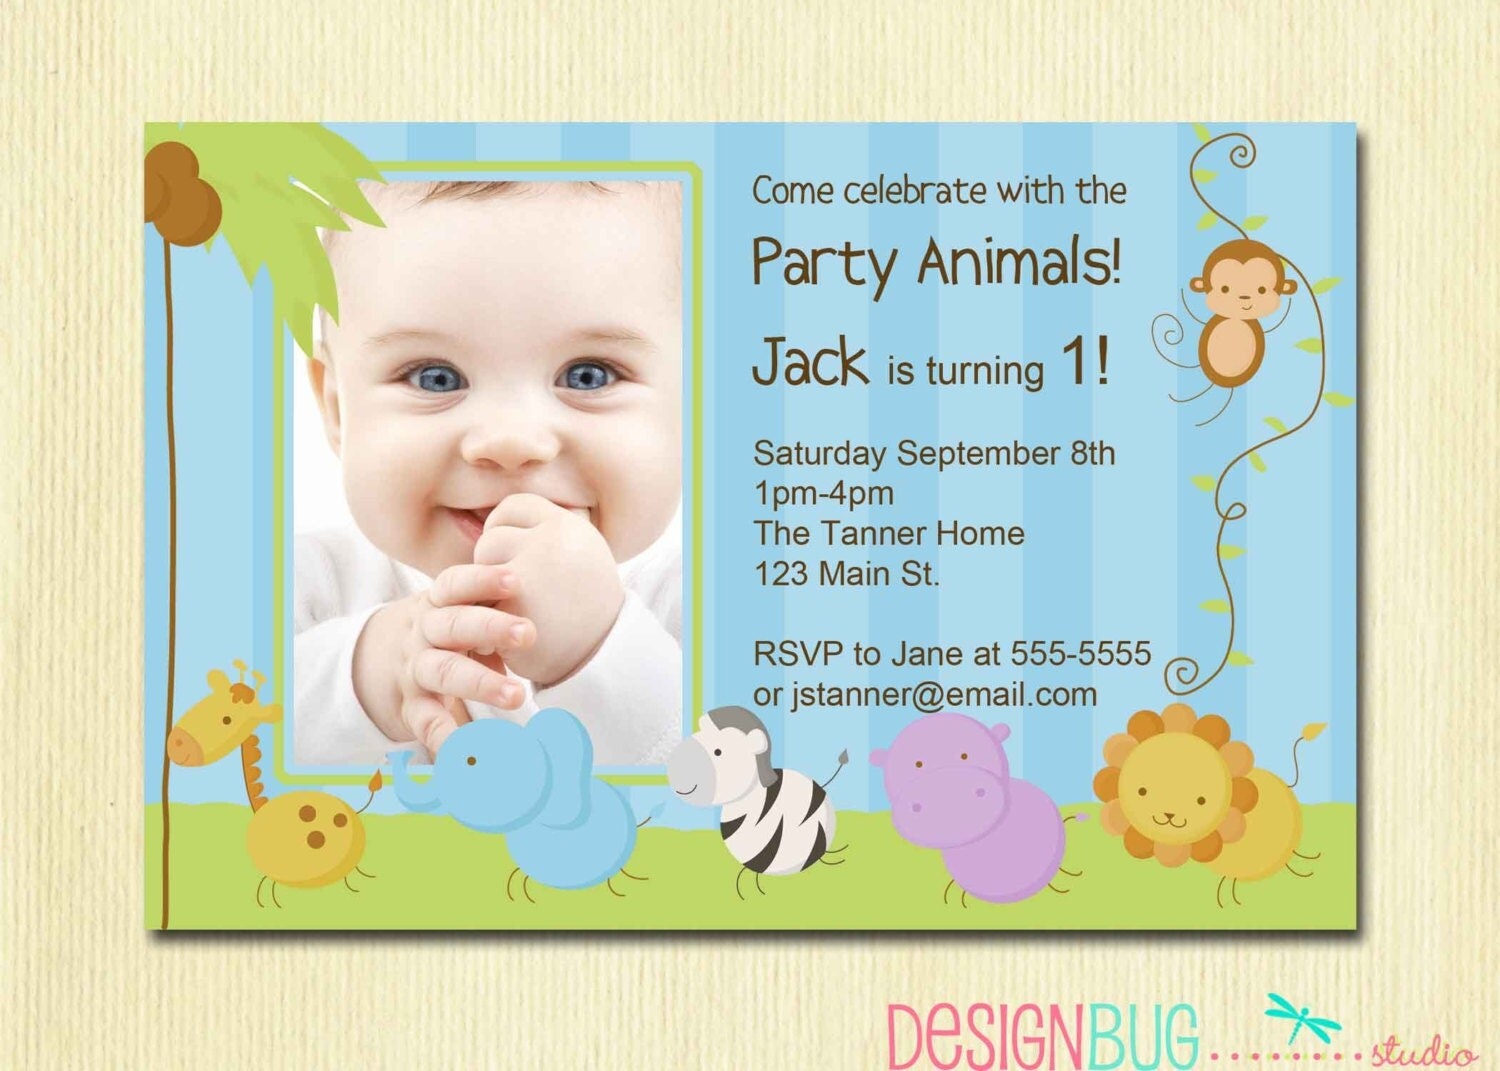 Baby Birthday Invitations - Birthday invitation wording for a one year old